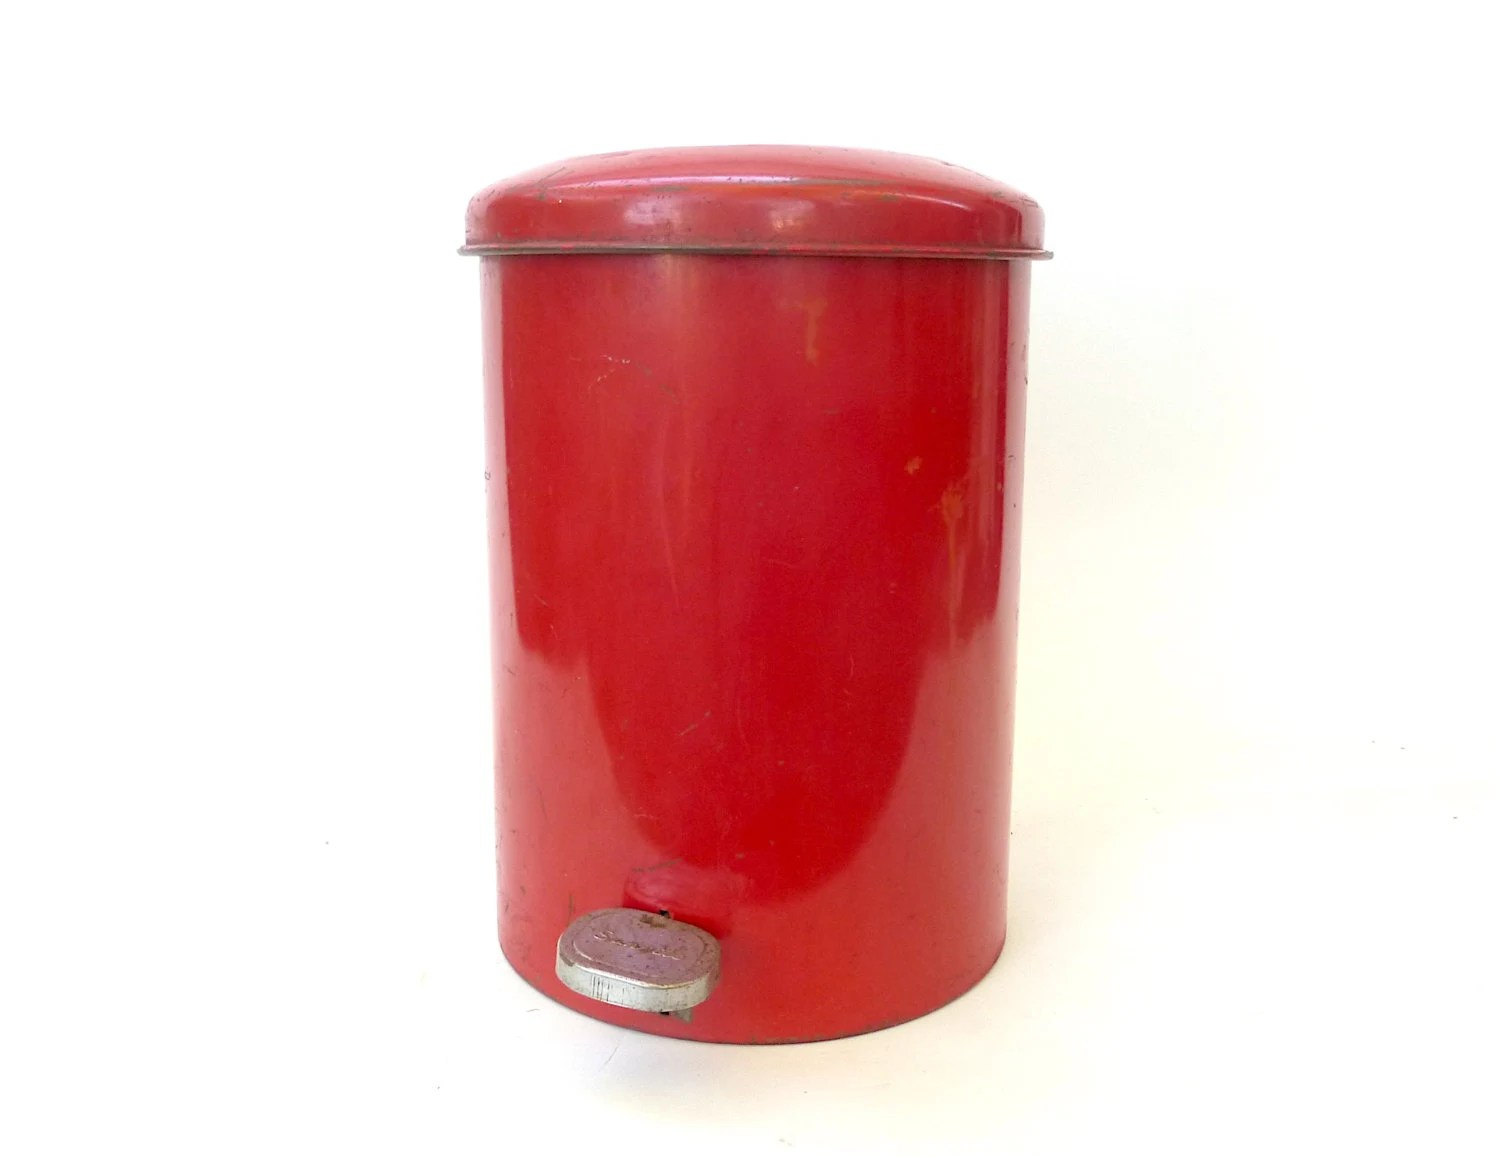 Modern Bathroom Trash Cans Vintage Red Metal Sanette Industrial Waste Basket With Lid